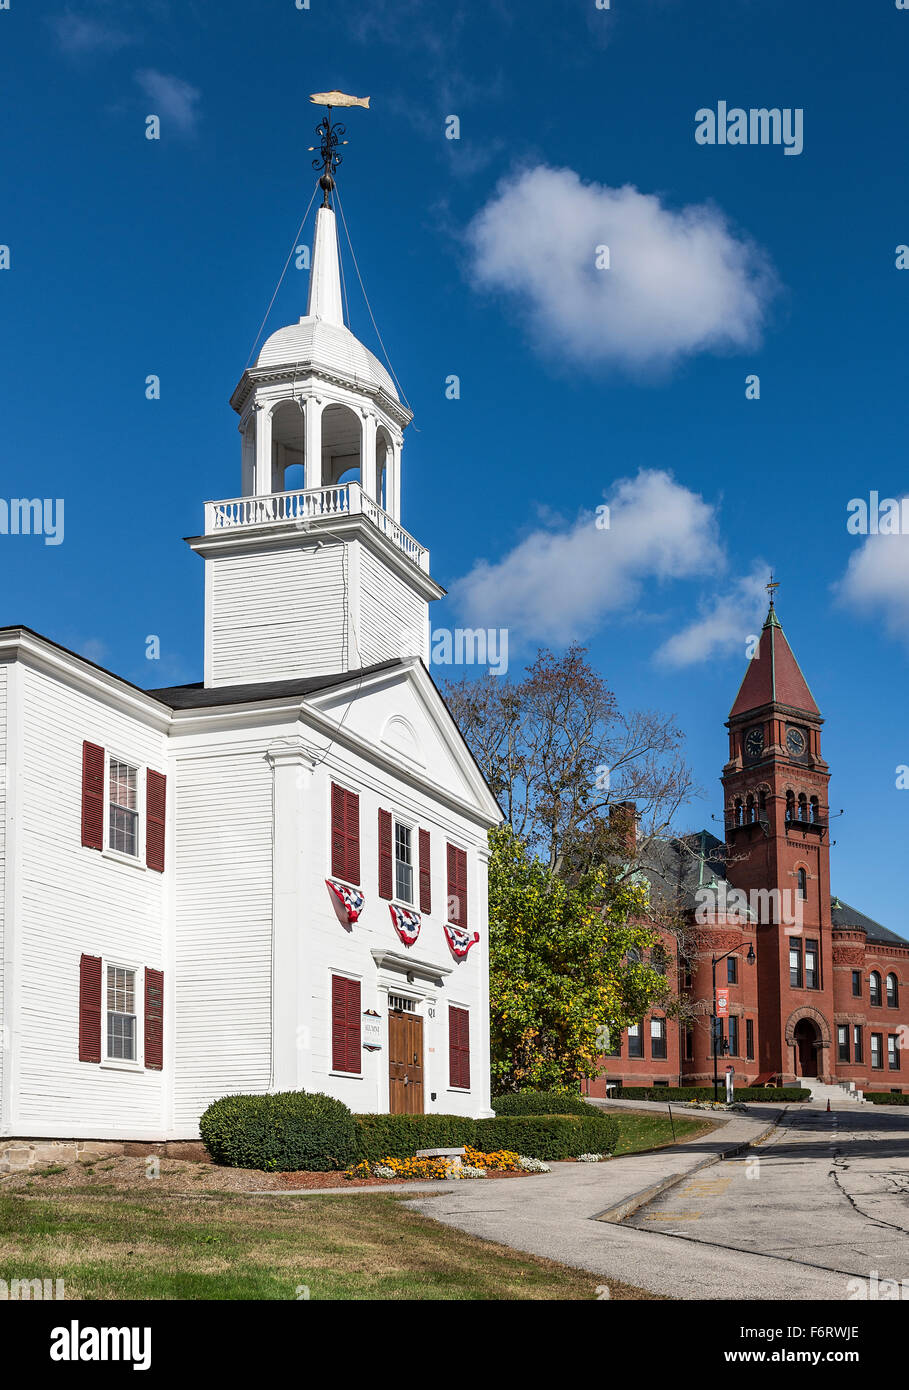 Pinkerton Academy campus, Derry, New Hampshire, USA - Stock Image